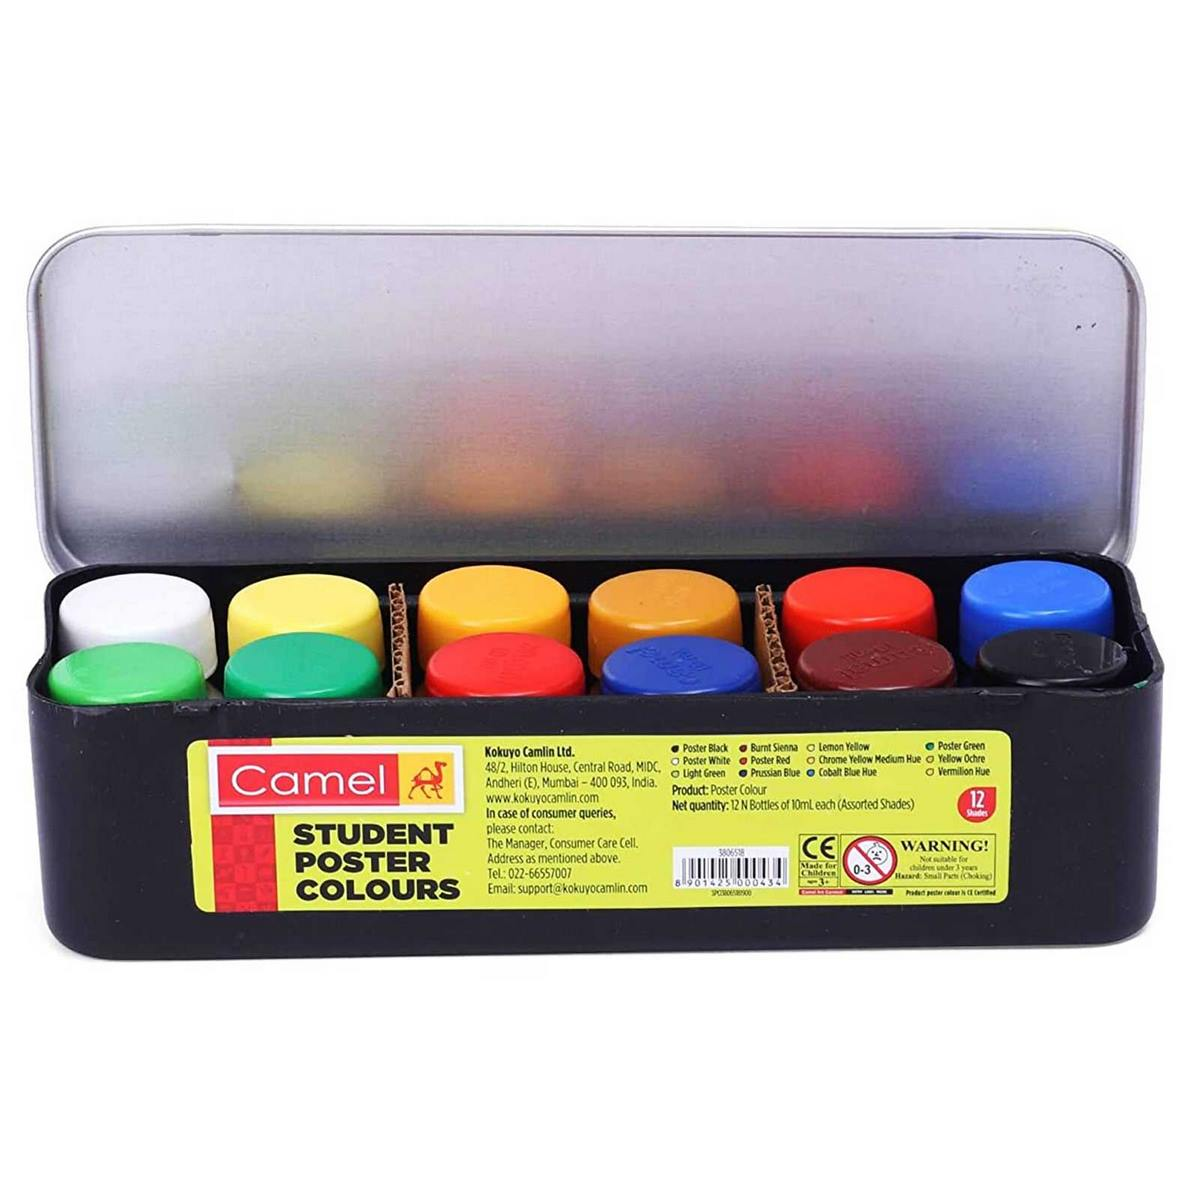 Camlin Student Poster Colours 3806518